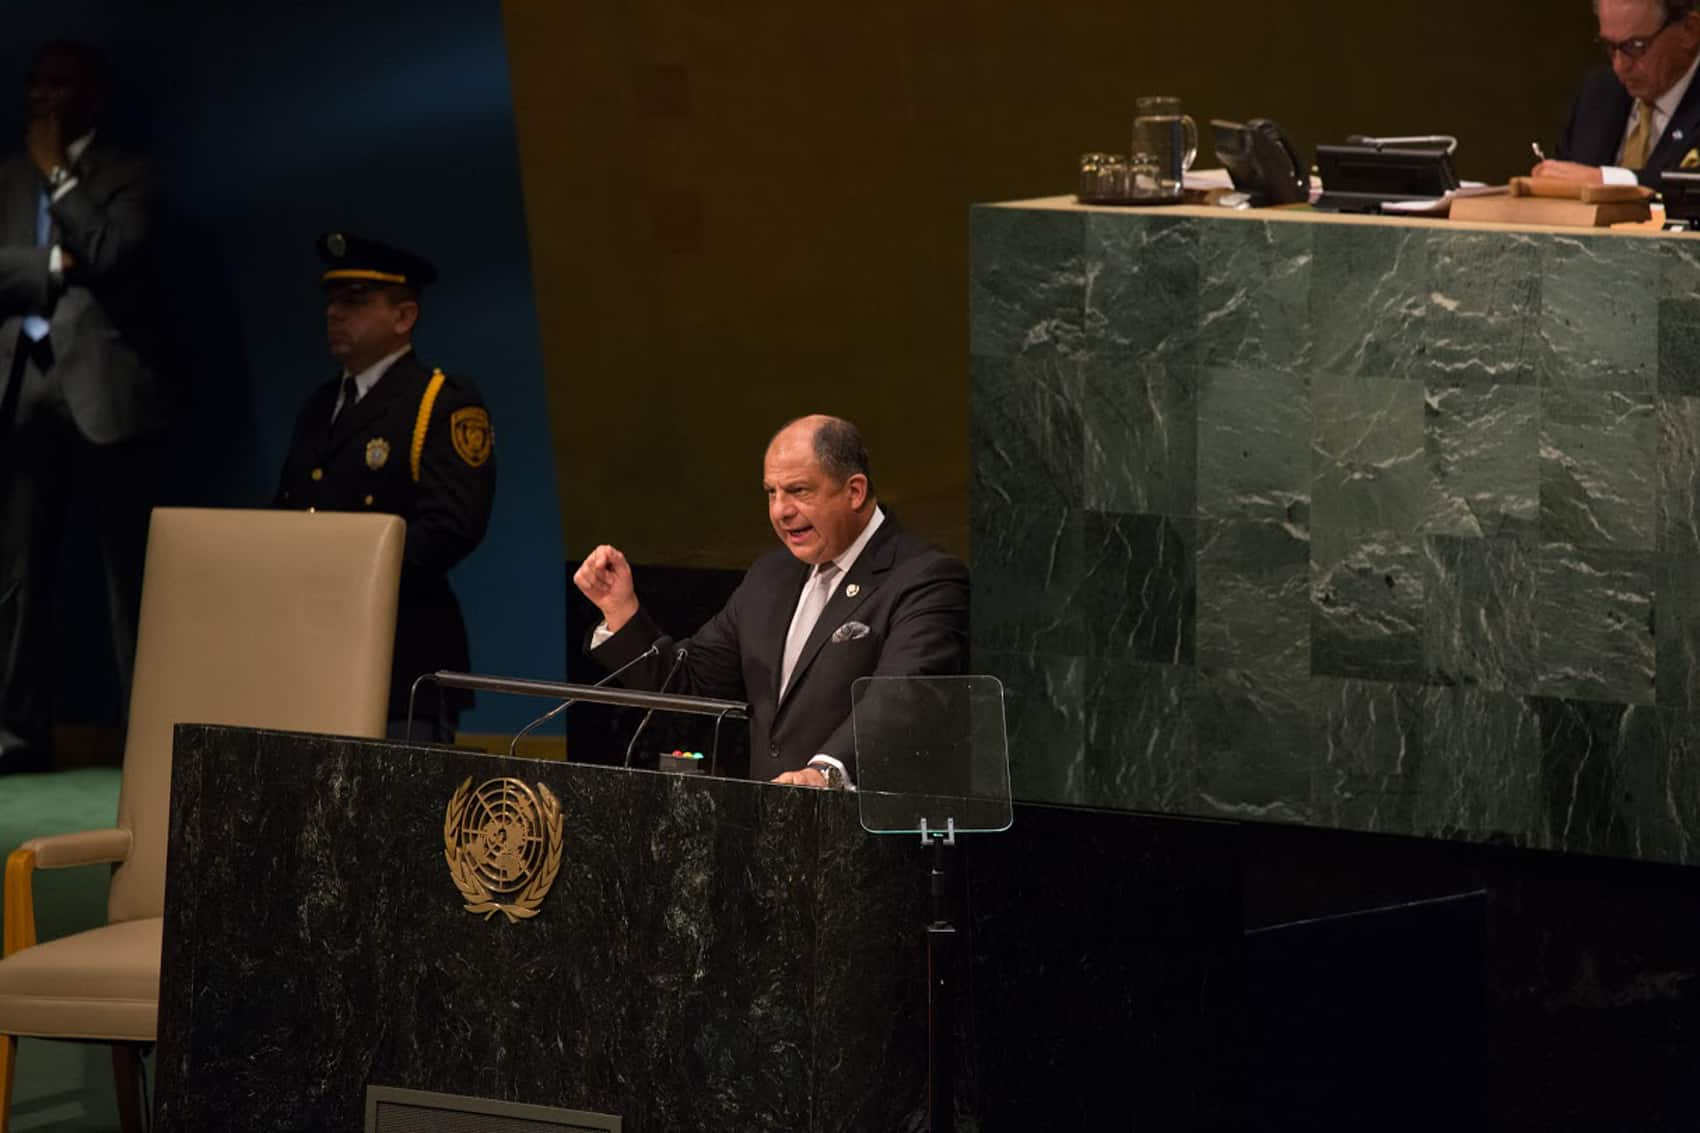 Costa Rica President Luis Guillermo Solís at the U.N.